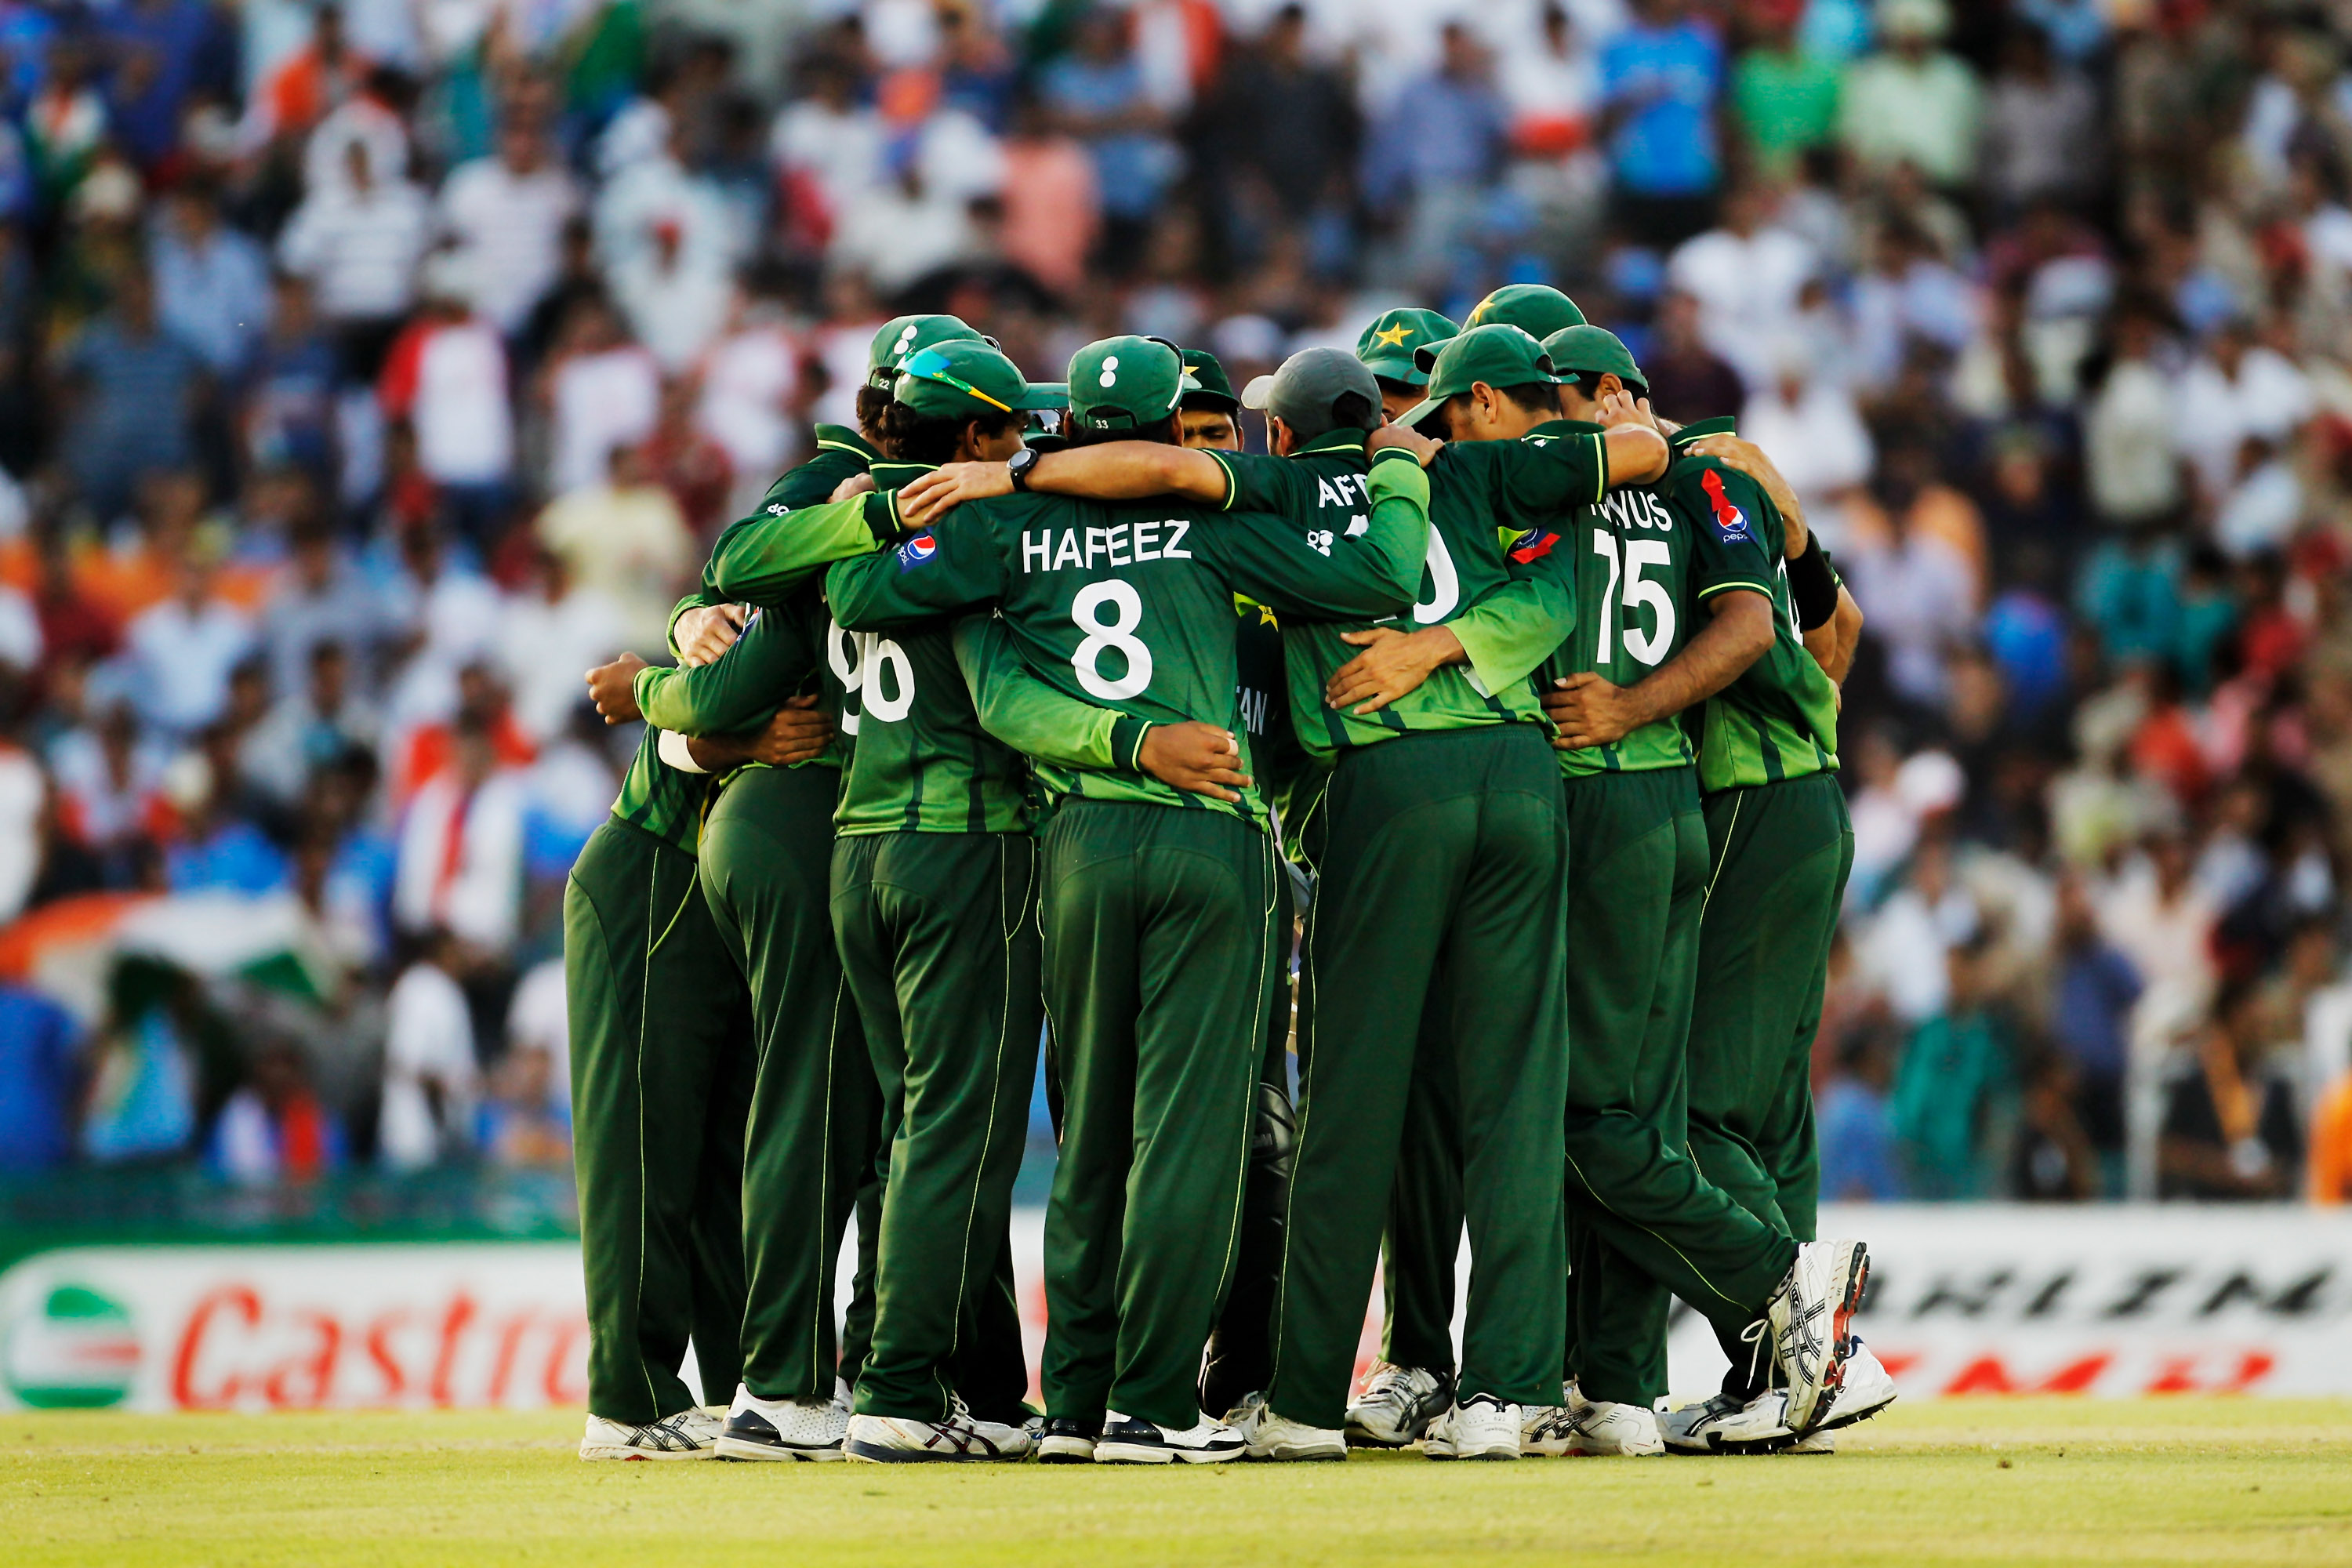 pakistan cricket team getty